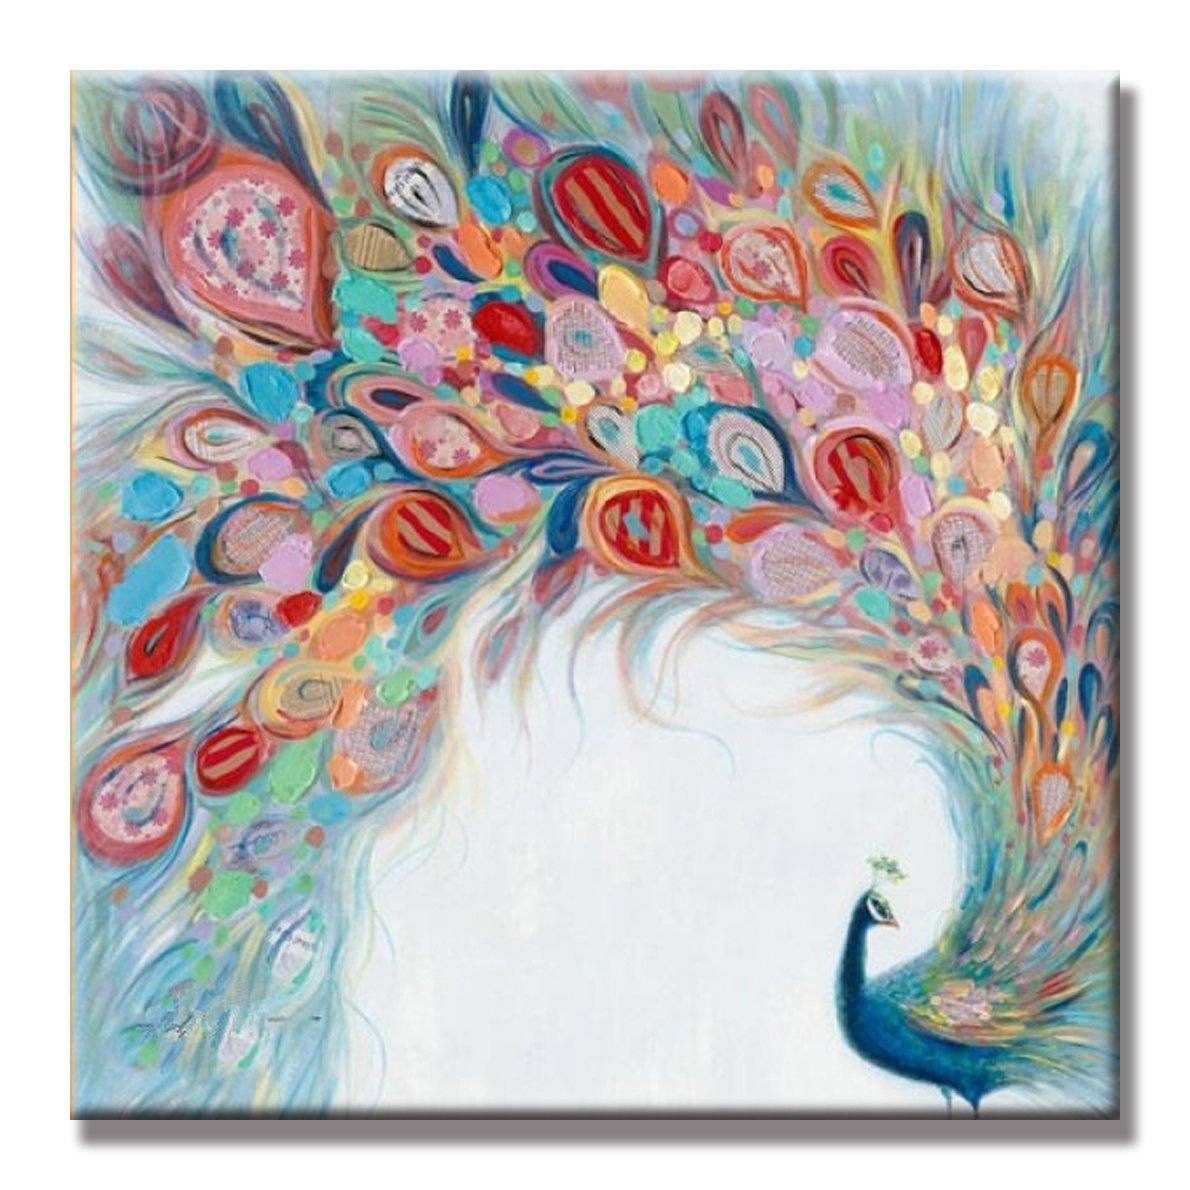 SEVEN WALL ARTS - 100% Hand Painted Oil Painting Animal Peacock Spreads Its Tail Painting with Frame for Home Decor (32x32 Inch)